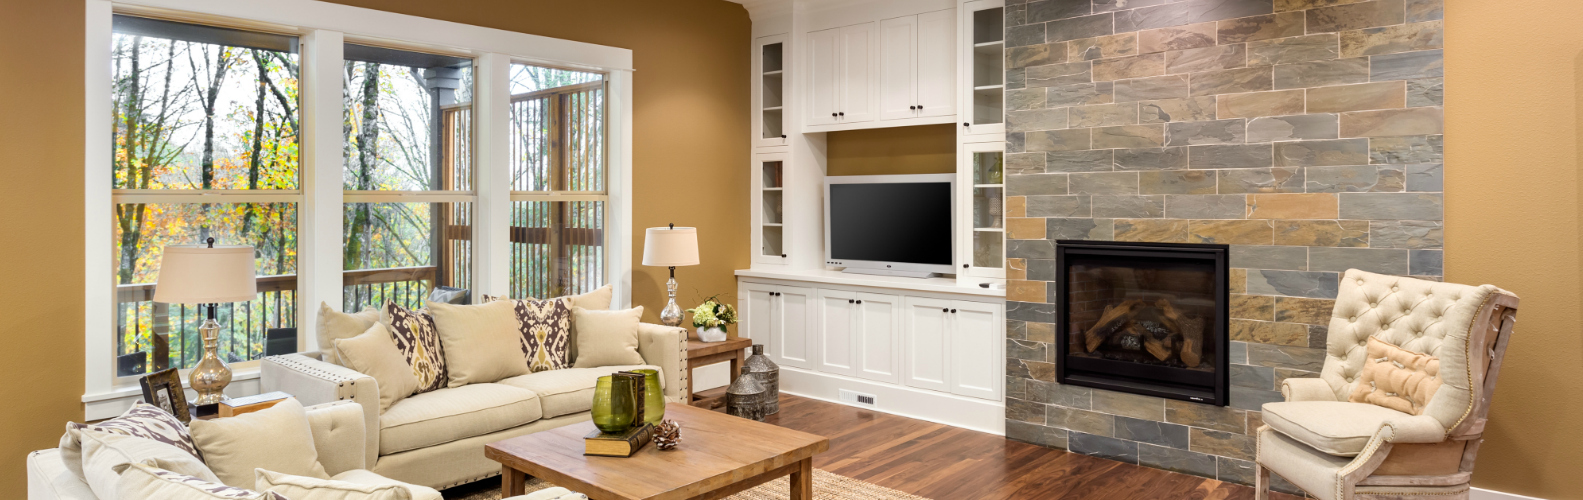 Idea Gallery - Family Rooms